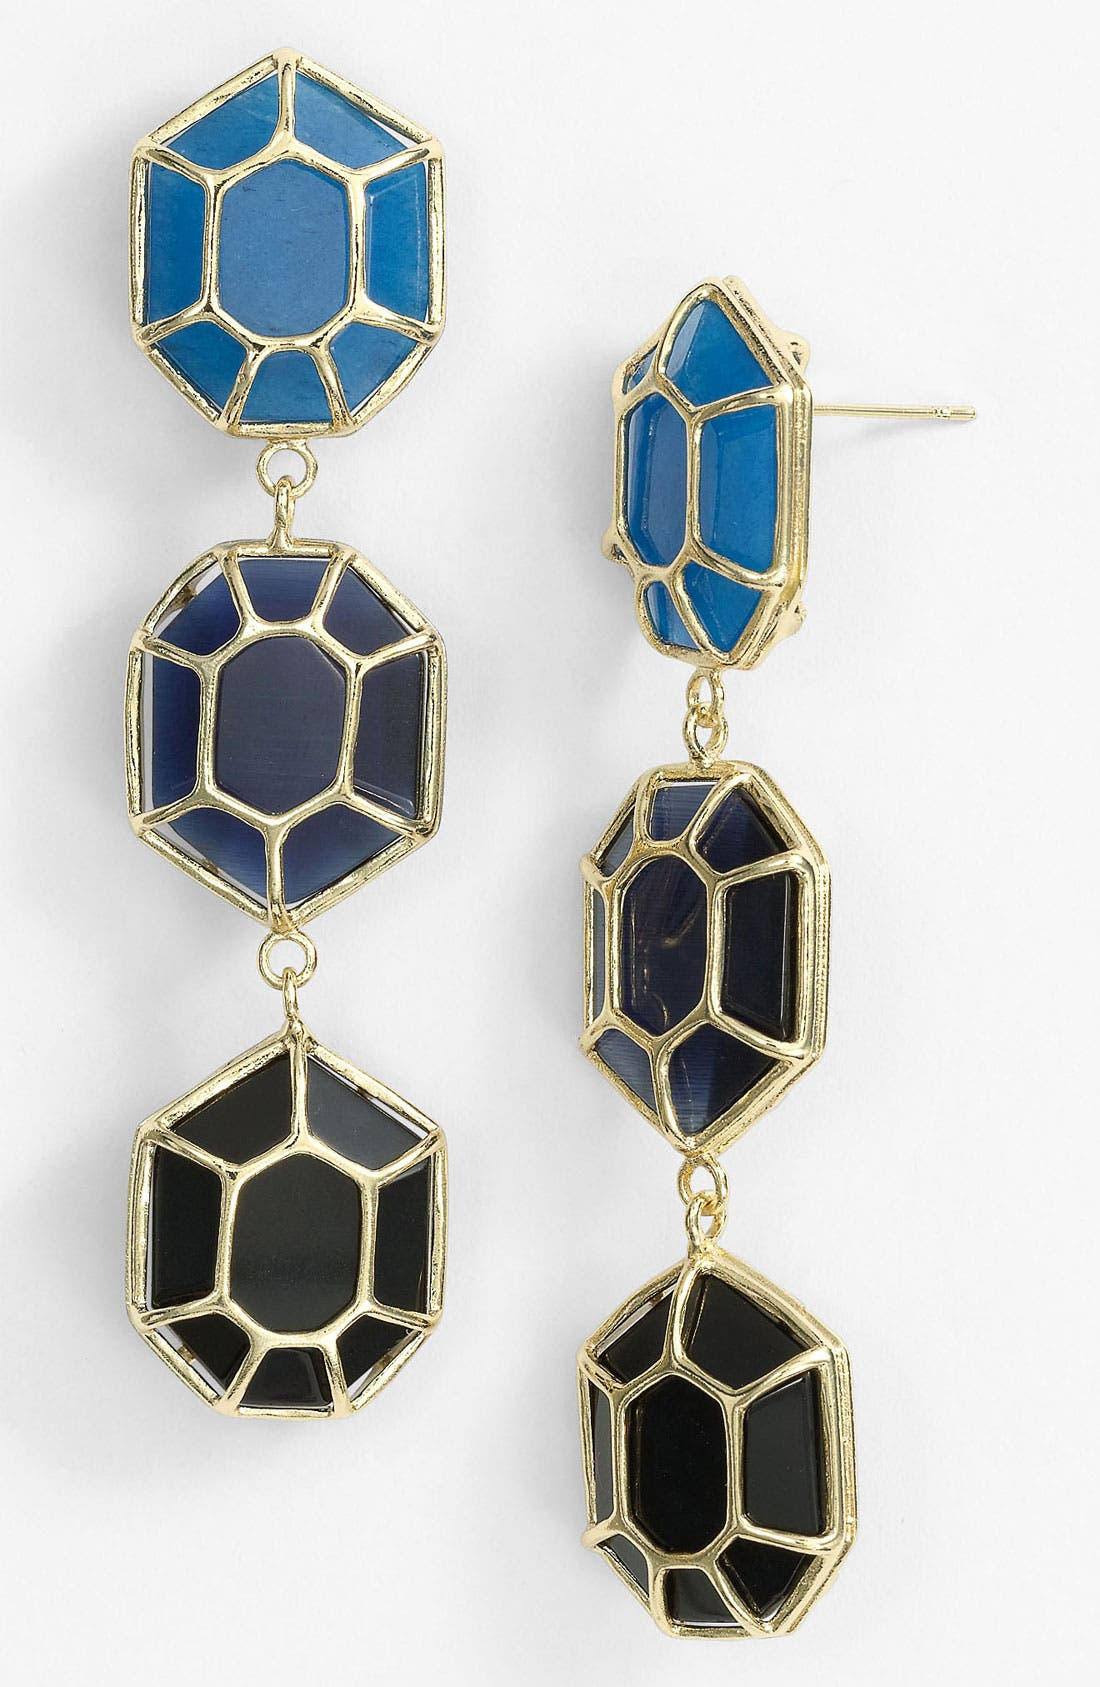 Main Image - Kendra Scott 'Maxine' Linear Earrings